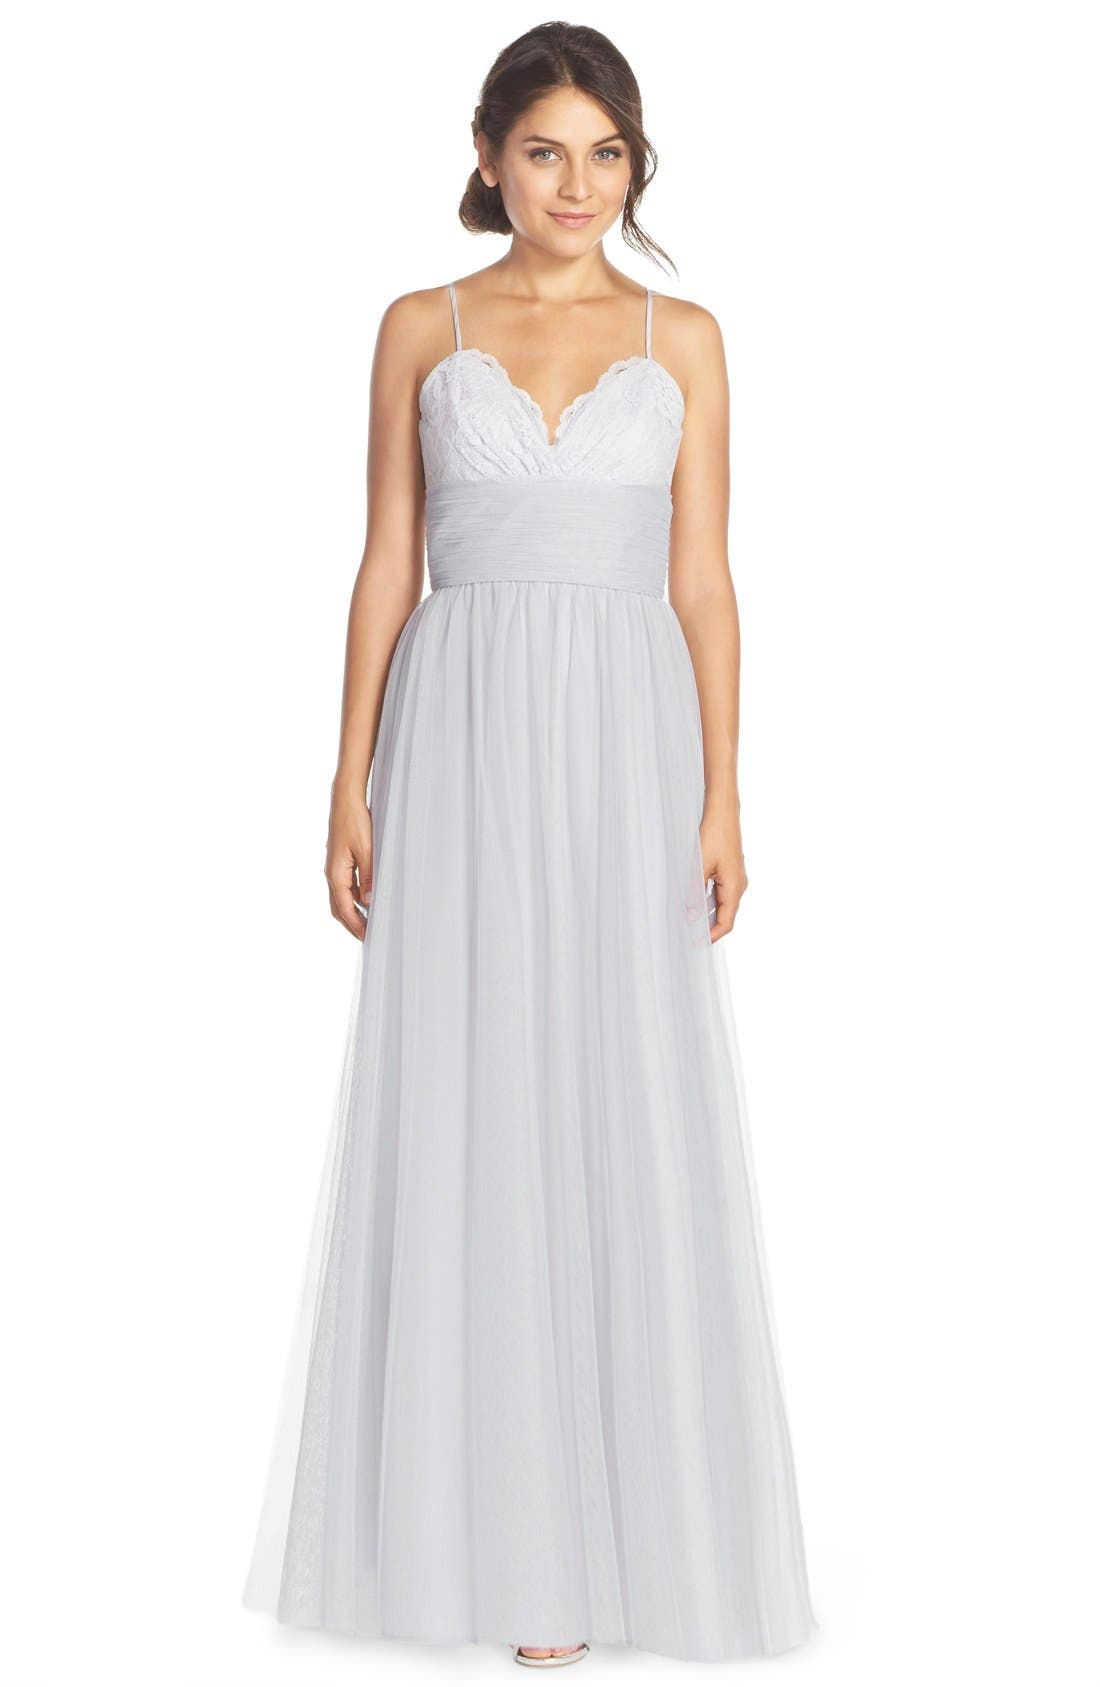 Lace & Tulle Spaghetti Strap Gown,                             Main thumbnail 1, color,                             020